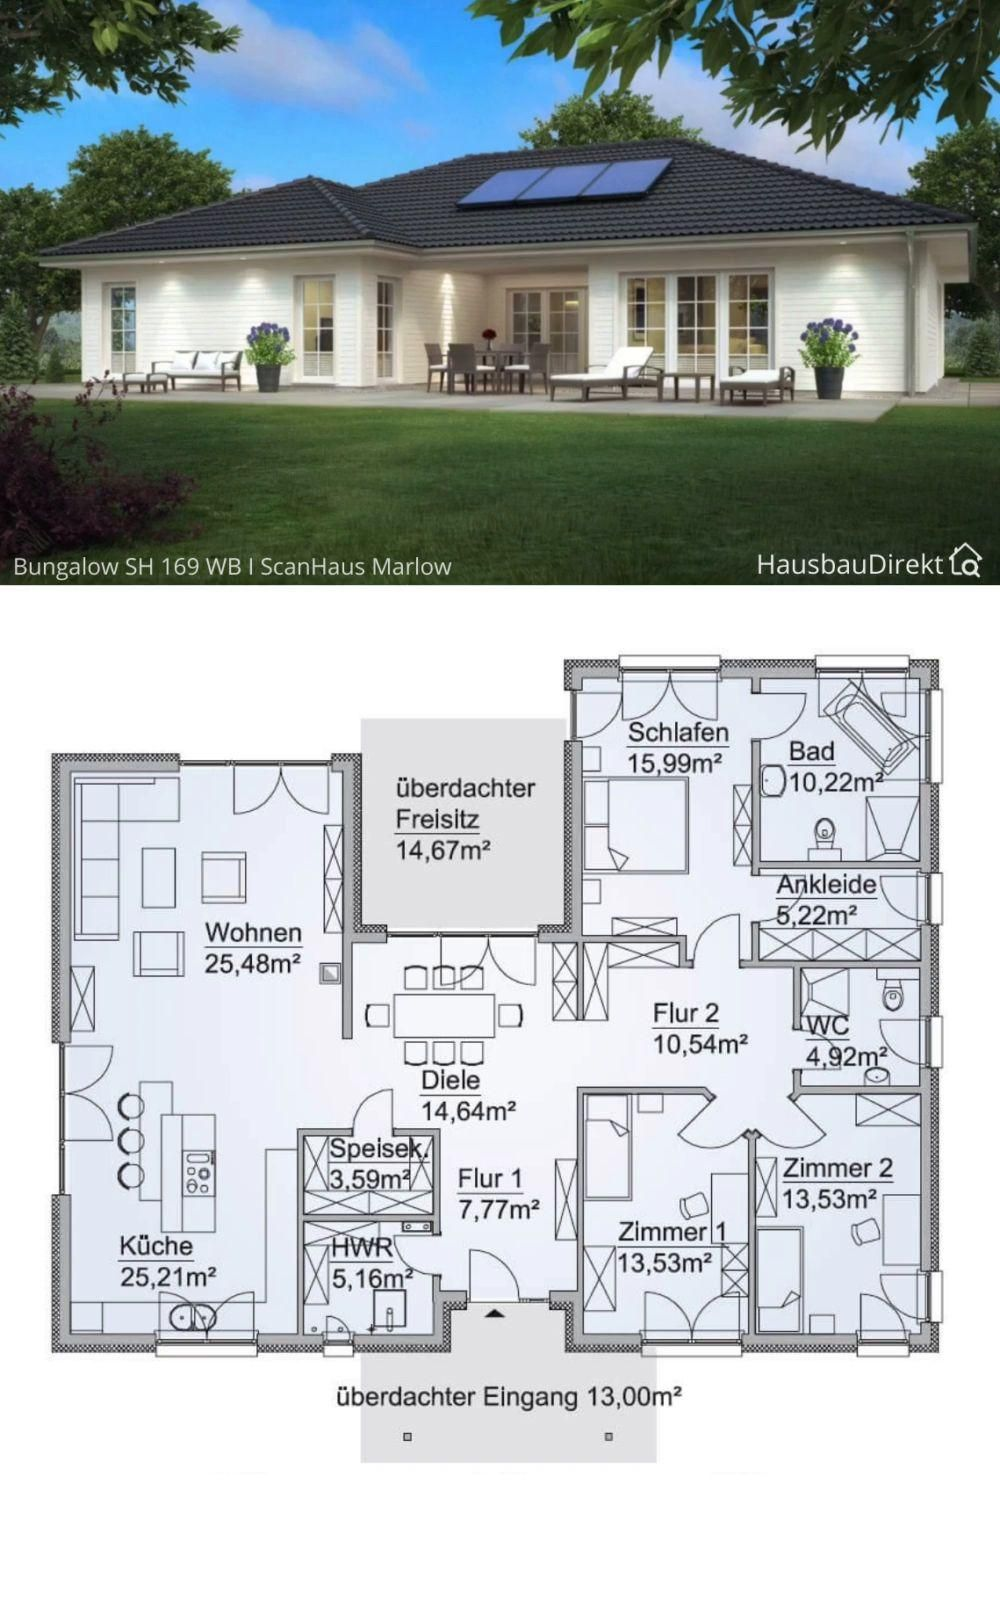 Bungalow House Plans with Open Floor & 3 Bedroom - Contemporary European Country House Design Ideas